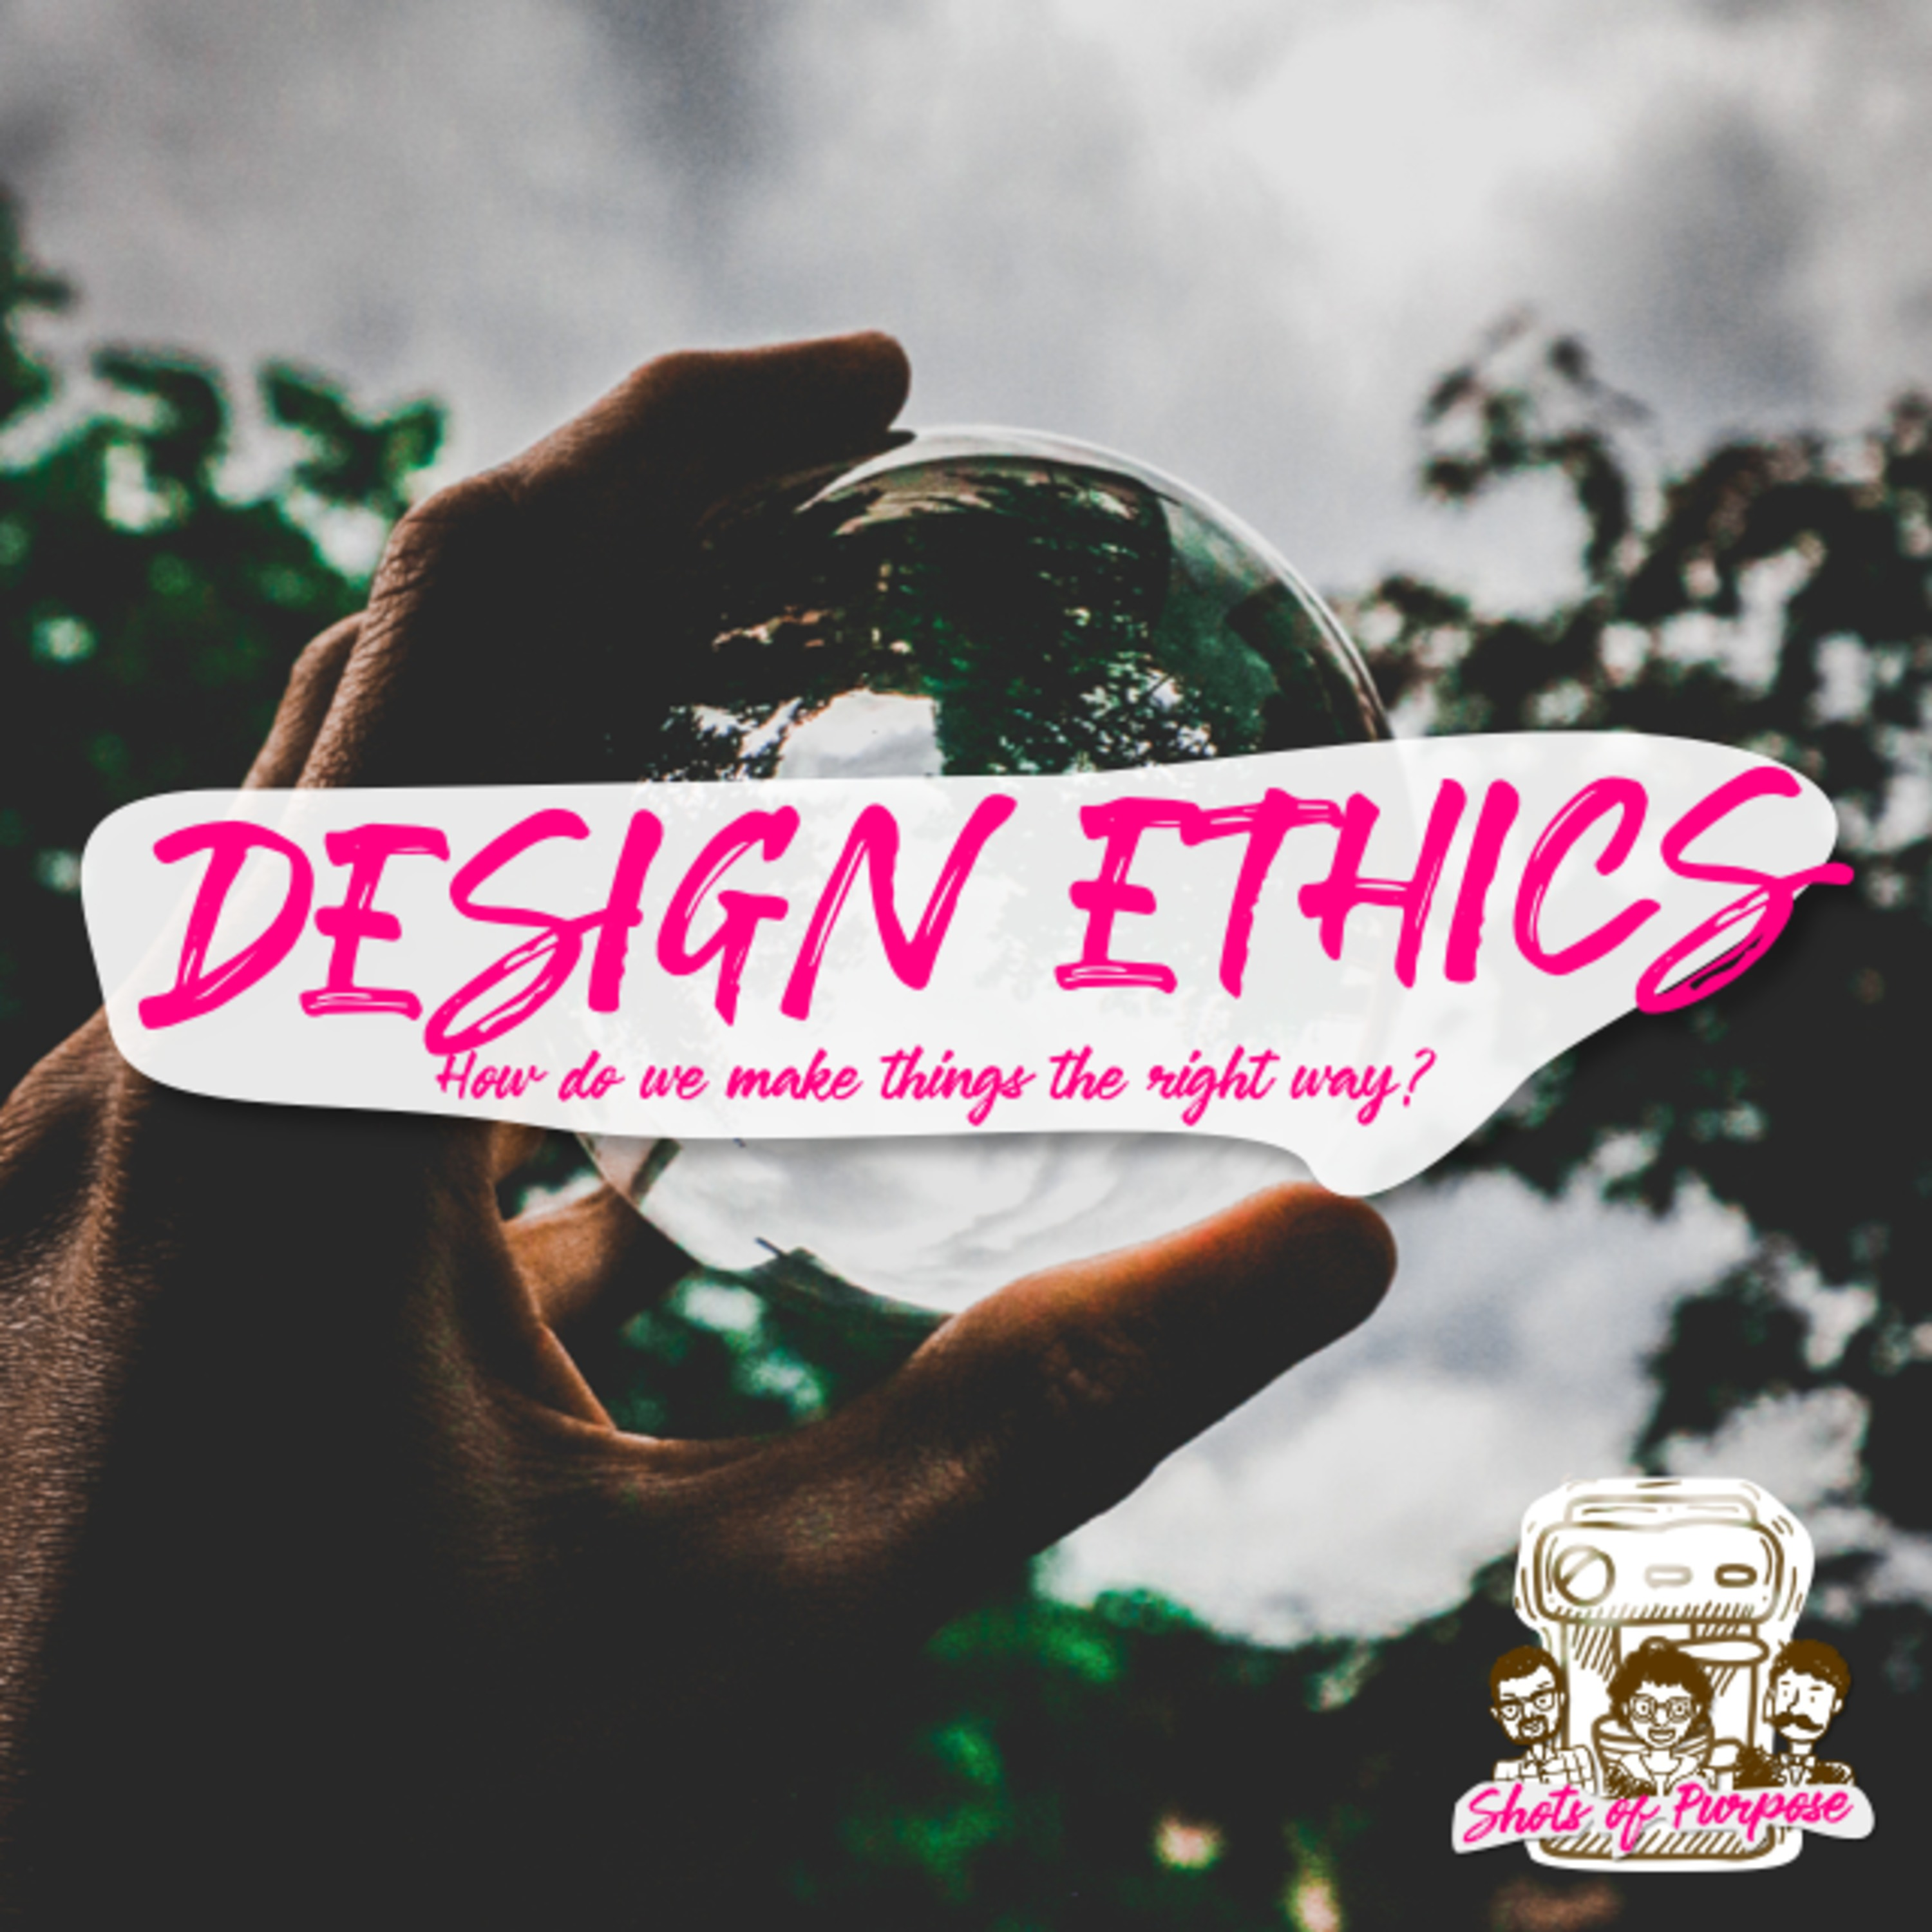 Design Ethics. How do we make things the right way?